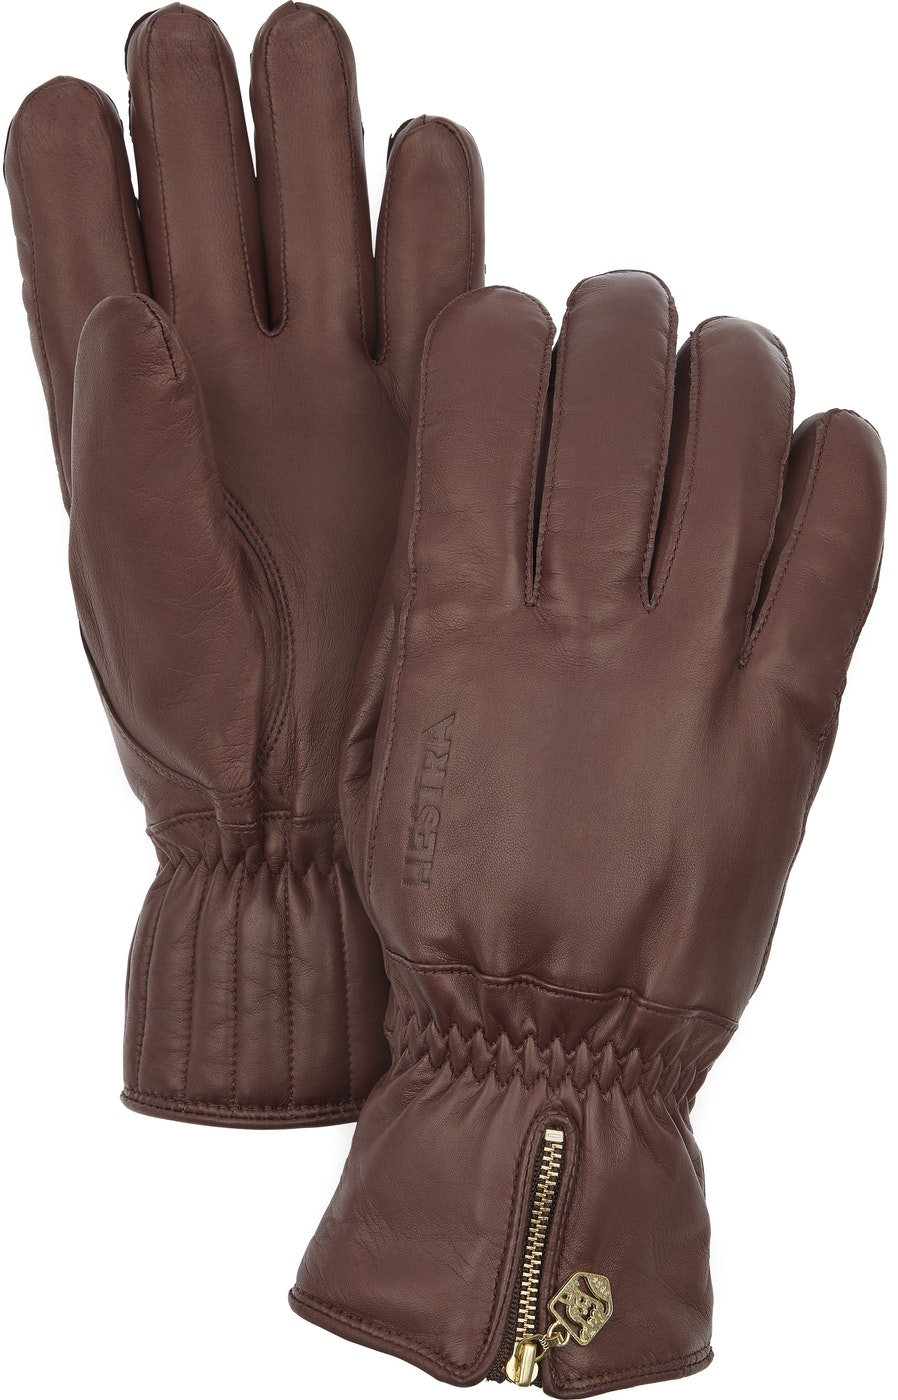 Product image for 30760 Leather Swisswool Classic - 5 finger